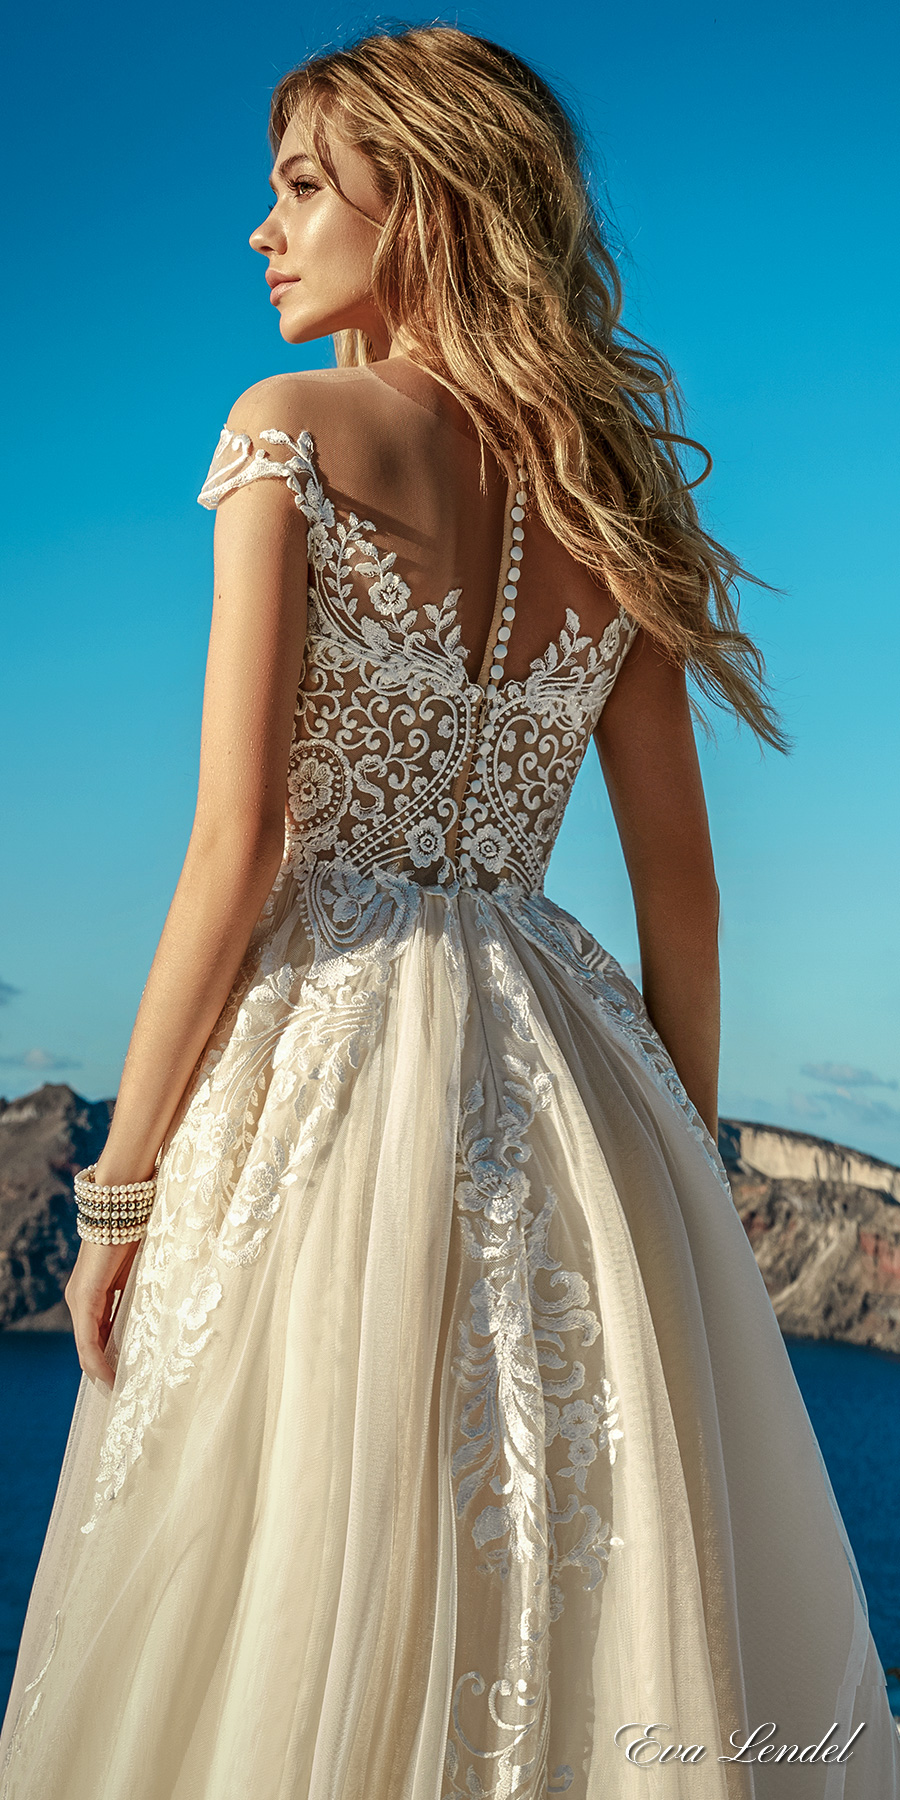 eva lendel 2017 bridal cap sleeves sweetheart neckline heavily embellished bodice romantic ivory color a line wedding dress lace back chapel train (cameron) bv